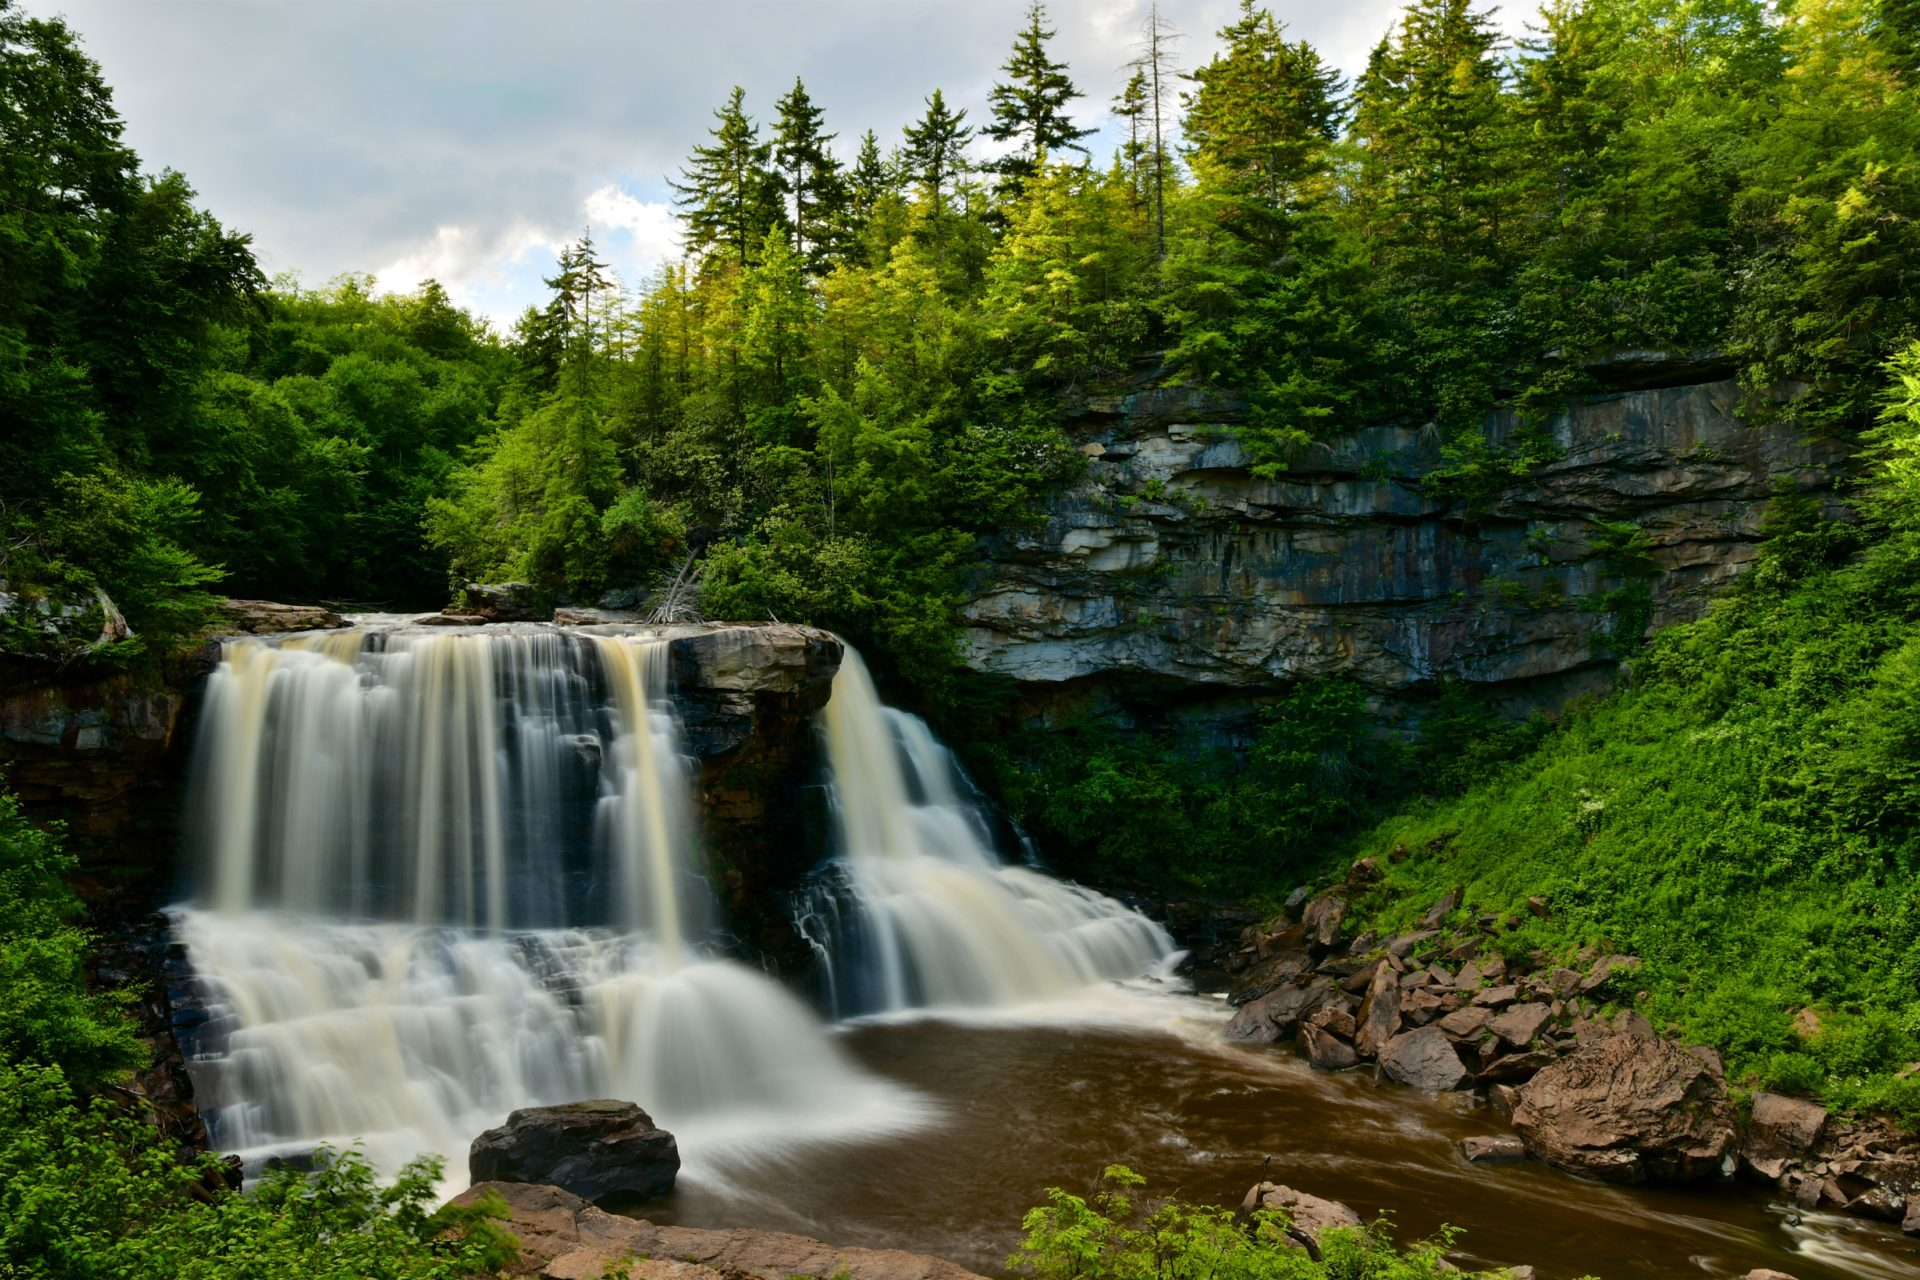 Blackwater Falls State Park - West Virginia State Parks - West ... on gunpowder falls state park trail map, fairy stone state park trail map, high bridge trail state park trail map, tuckahoe state park trail map, cunningham falls state park trail map, gambrill state park trail map, leesylvania state park trail map, susquehanna state park trail map, grayson highlands state park trail map, occoneechee state park trail map, first landing state park trail map, hungry mother state park trail map, mason neck state park trail map, jones gap state park trail map, kiptopeke state park trail map, sky meadows state park trail map, caledon state park trail map, westmoreland state park trail map, patapsco valley state park trail map, cape henlopen state park trail map,